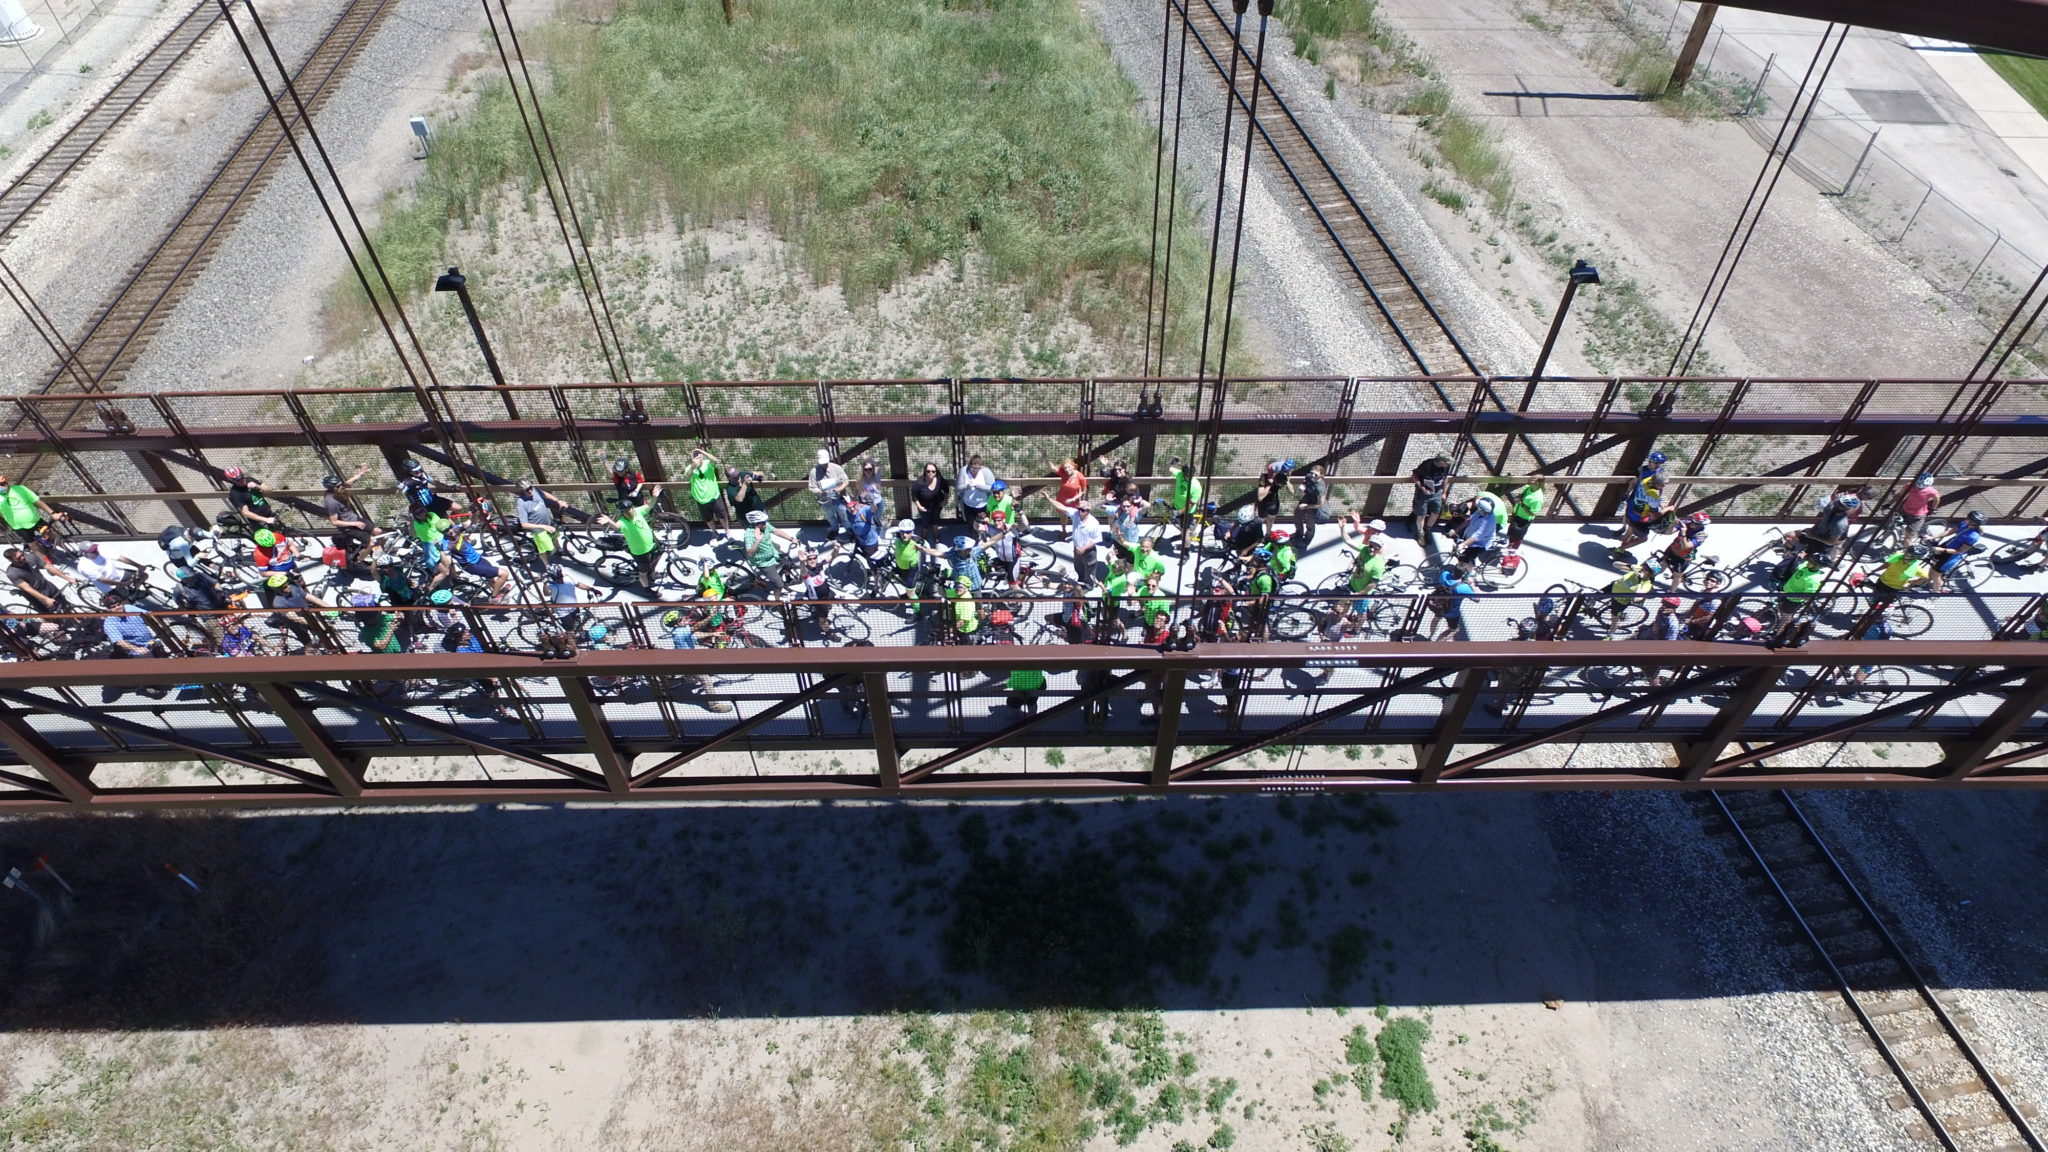 Drone Image Of Bicyclists Meeting On The Jordan River Bridge During The Golden Spoke Rides And Event. Image Courtesy Of Eric Mayer.